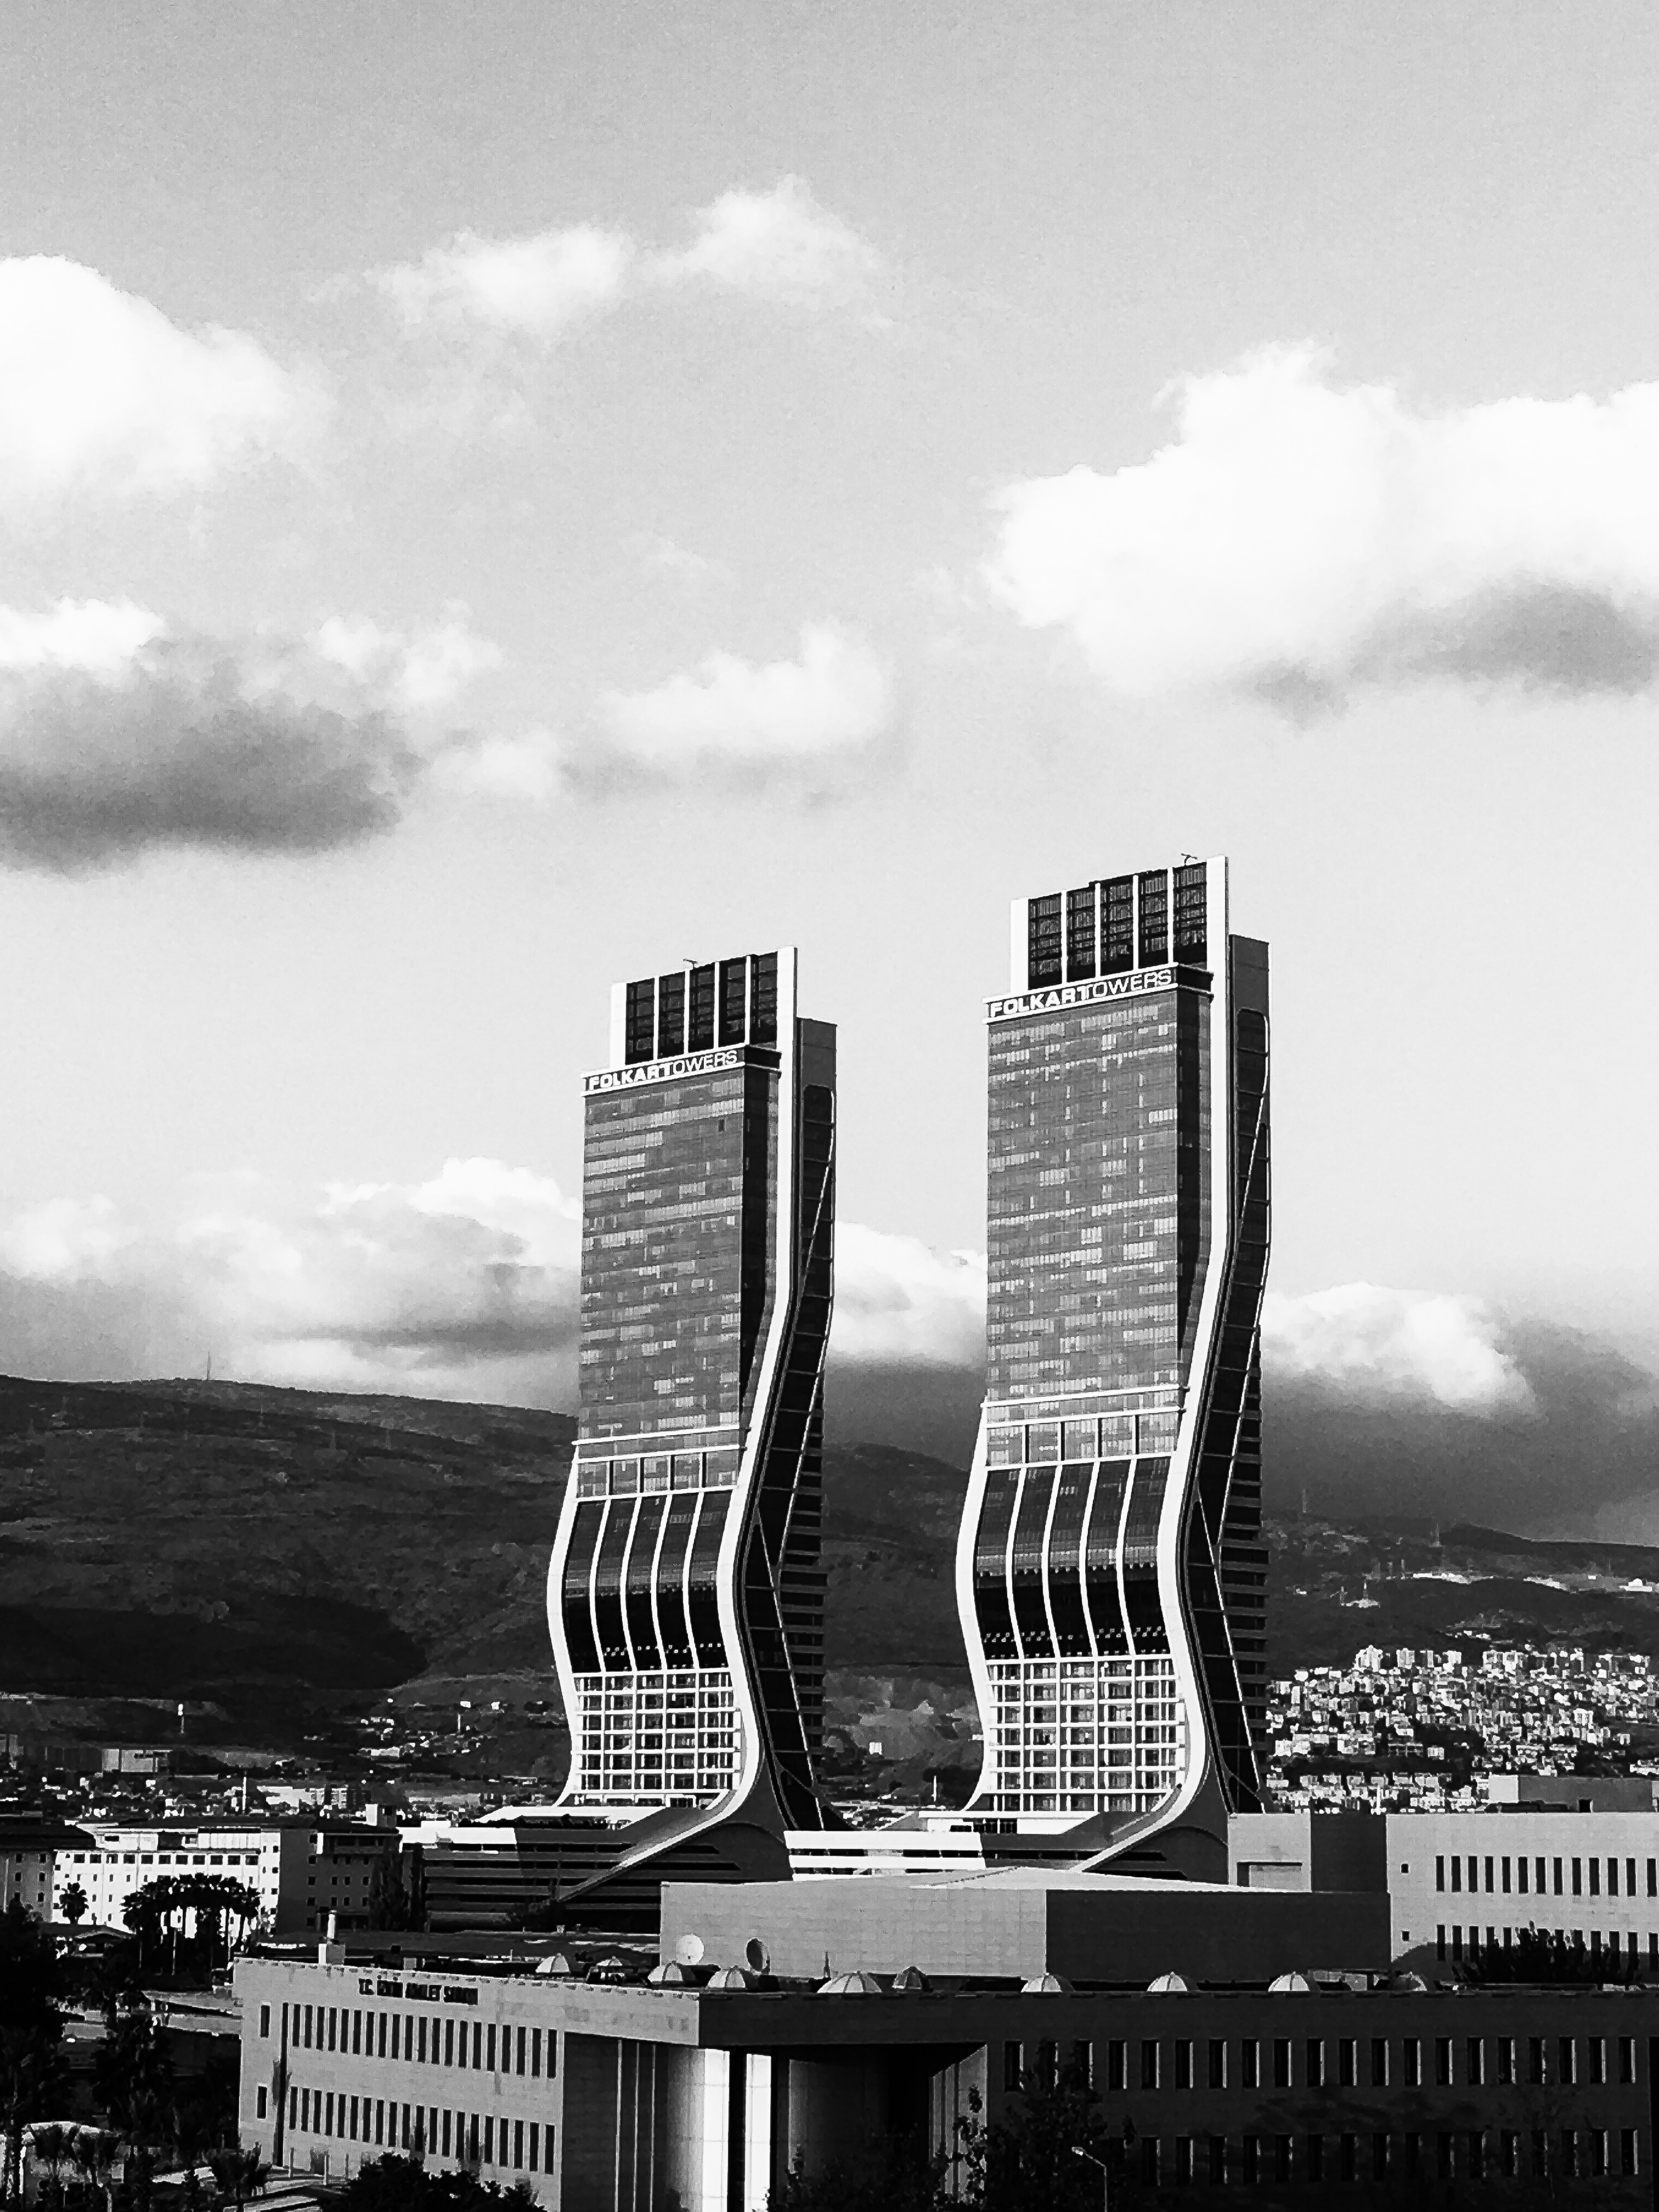 Greyscale photography of two high rise buildings